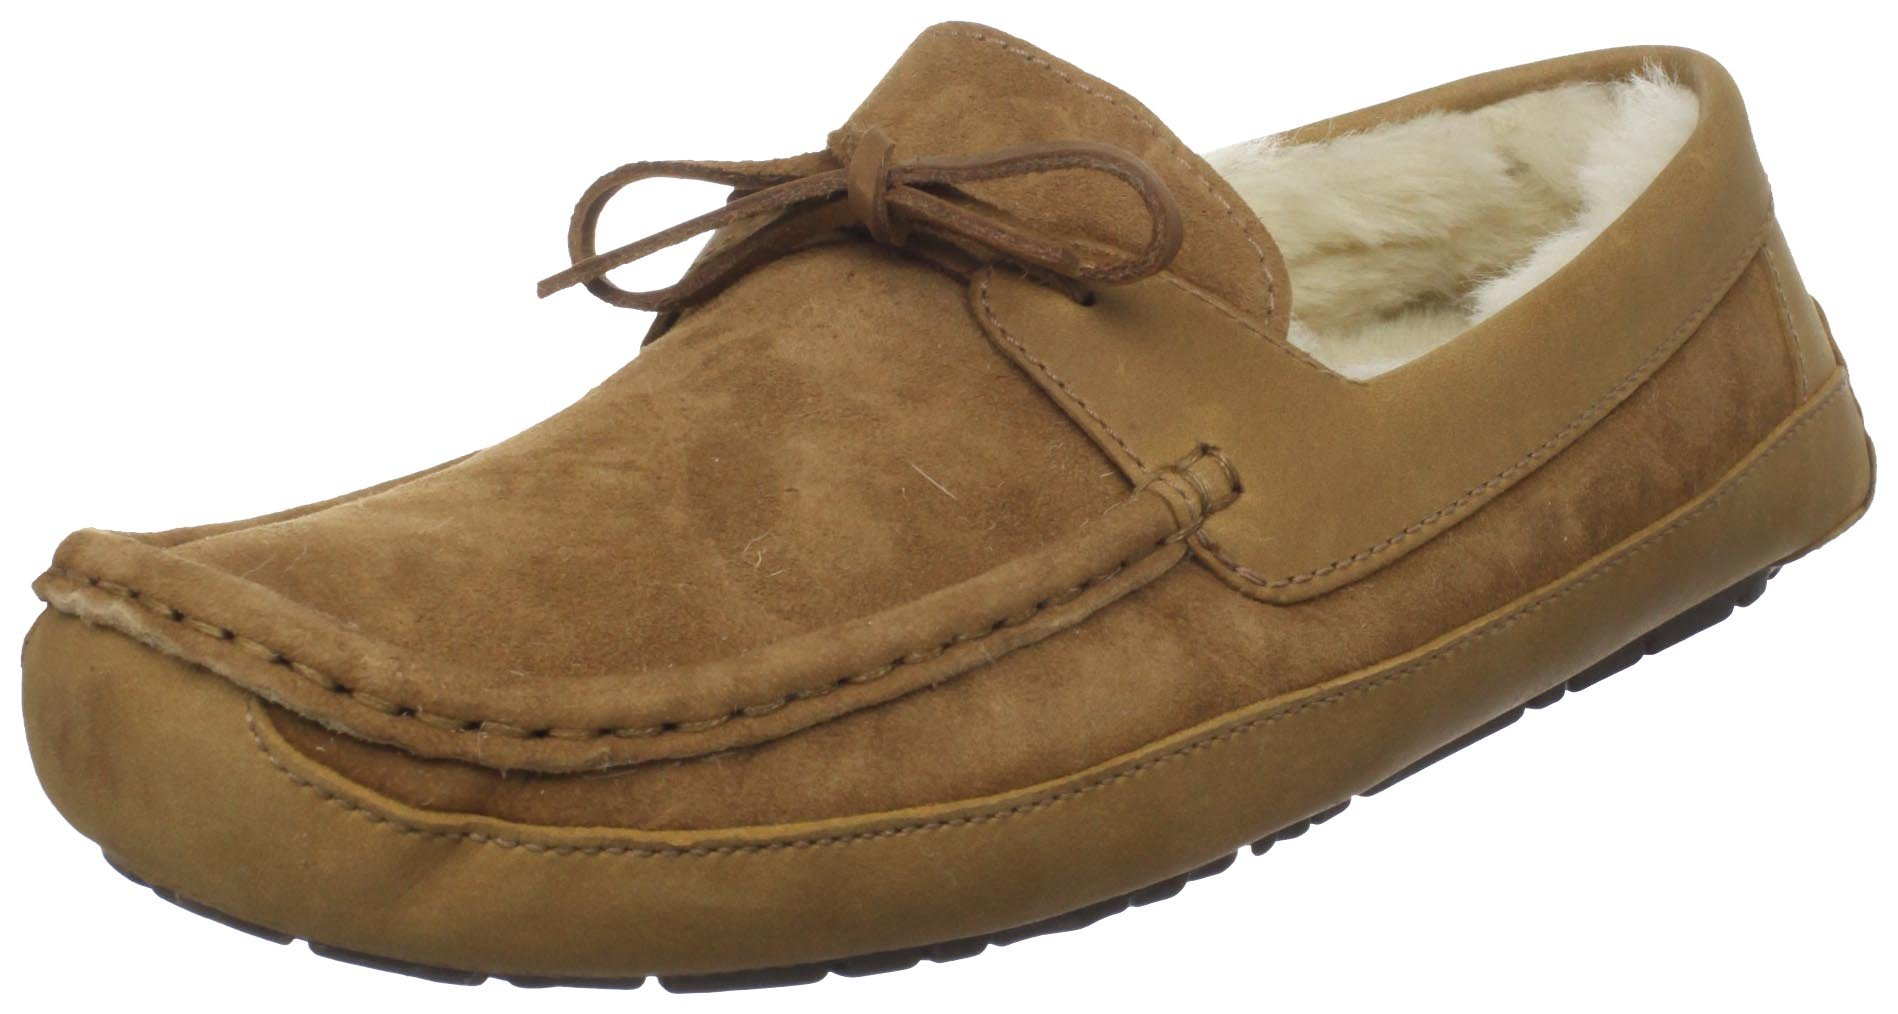 UGG Australia Men's Byron Travel Slippers Chestnut 15